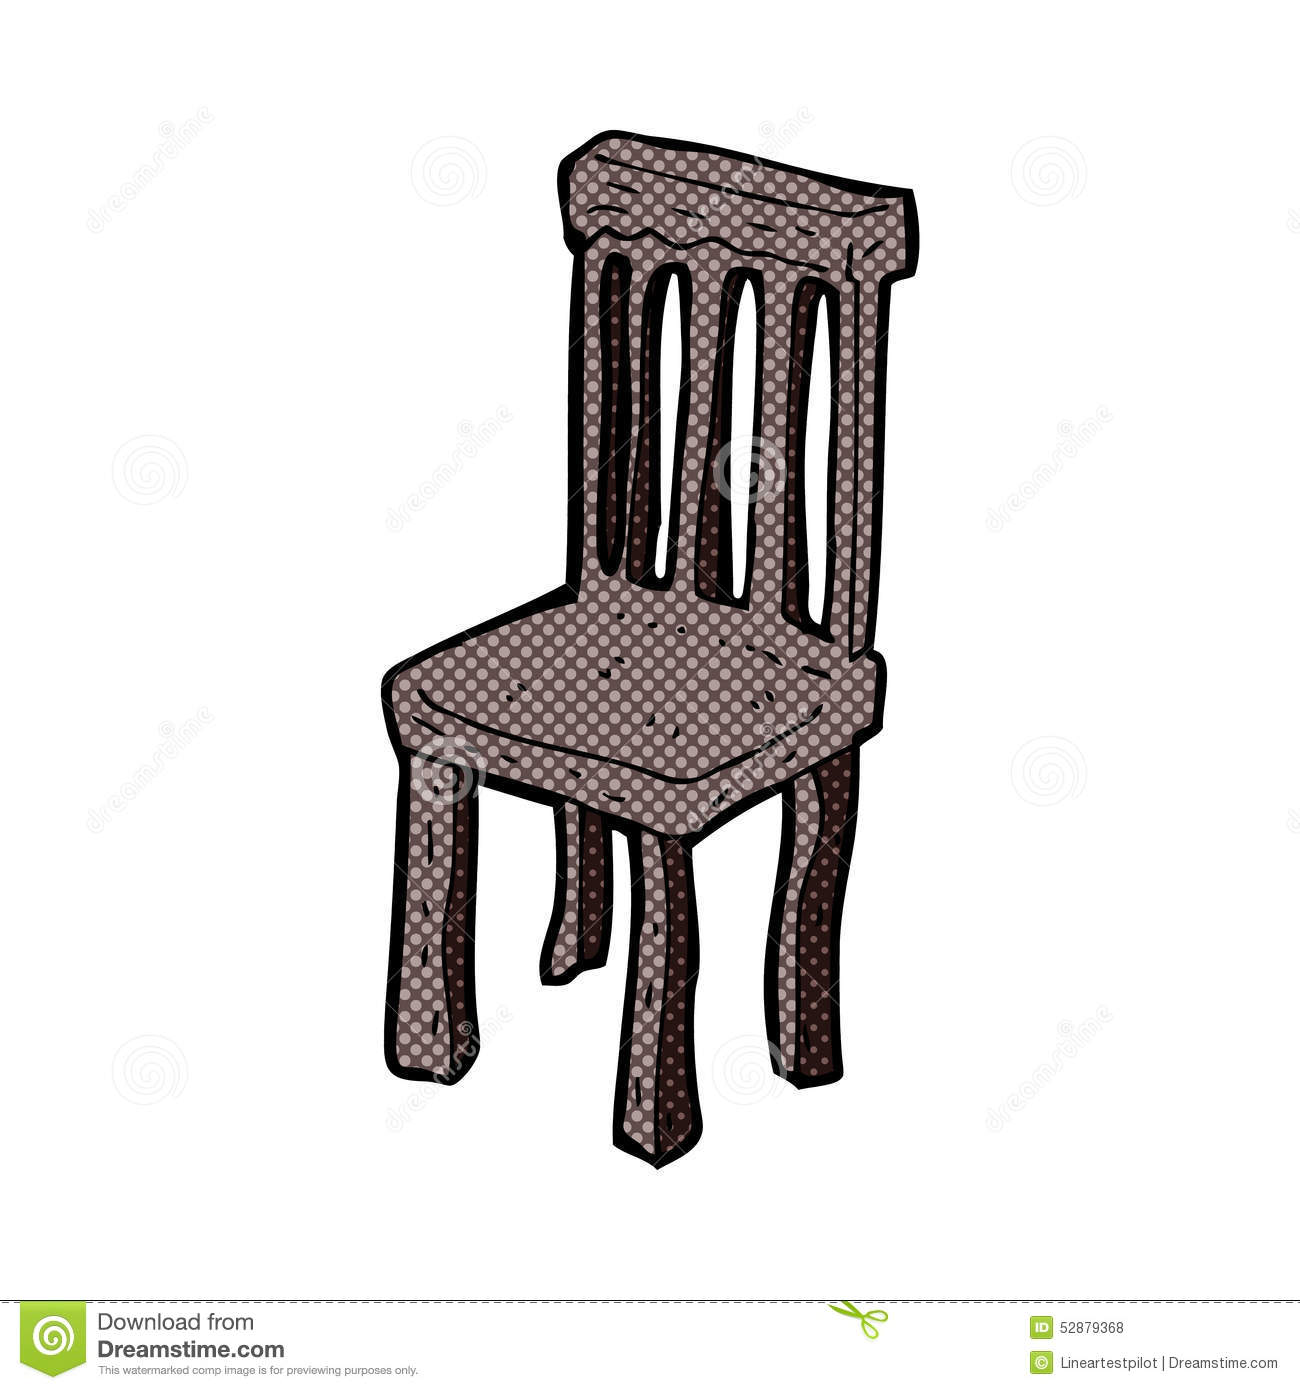 Comic cartoon old wooden chair stock illustration image